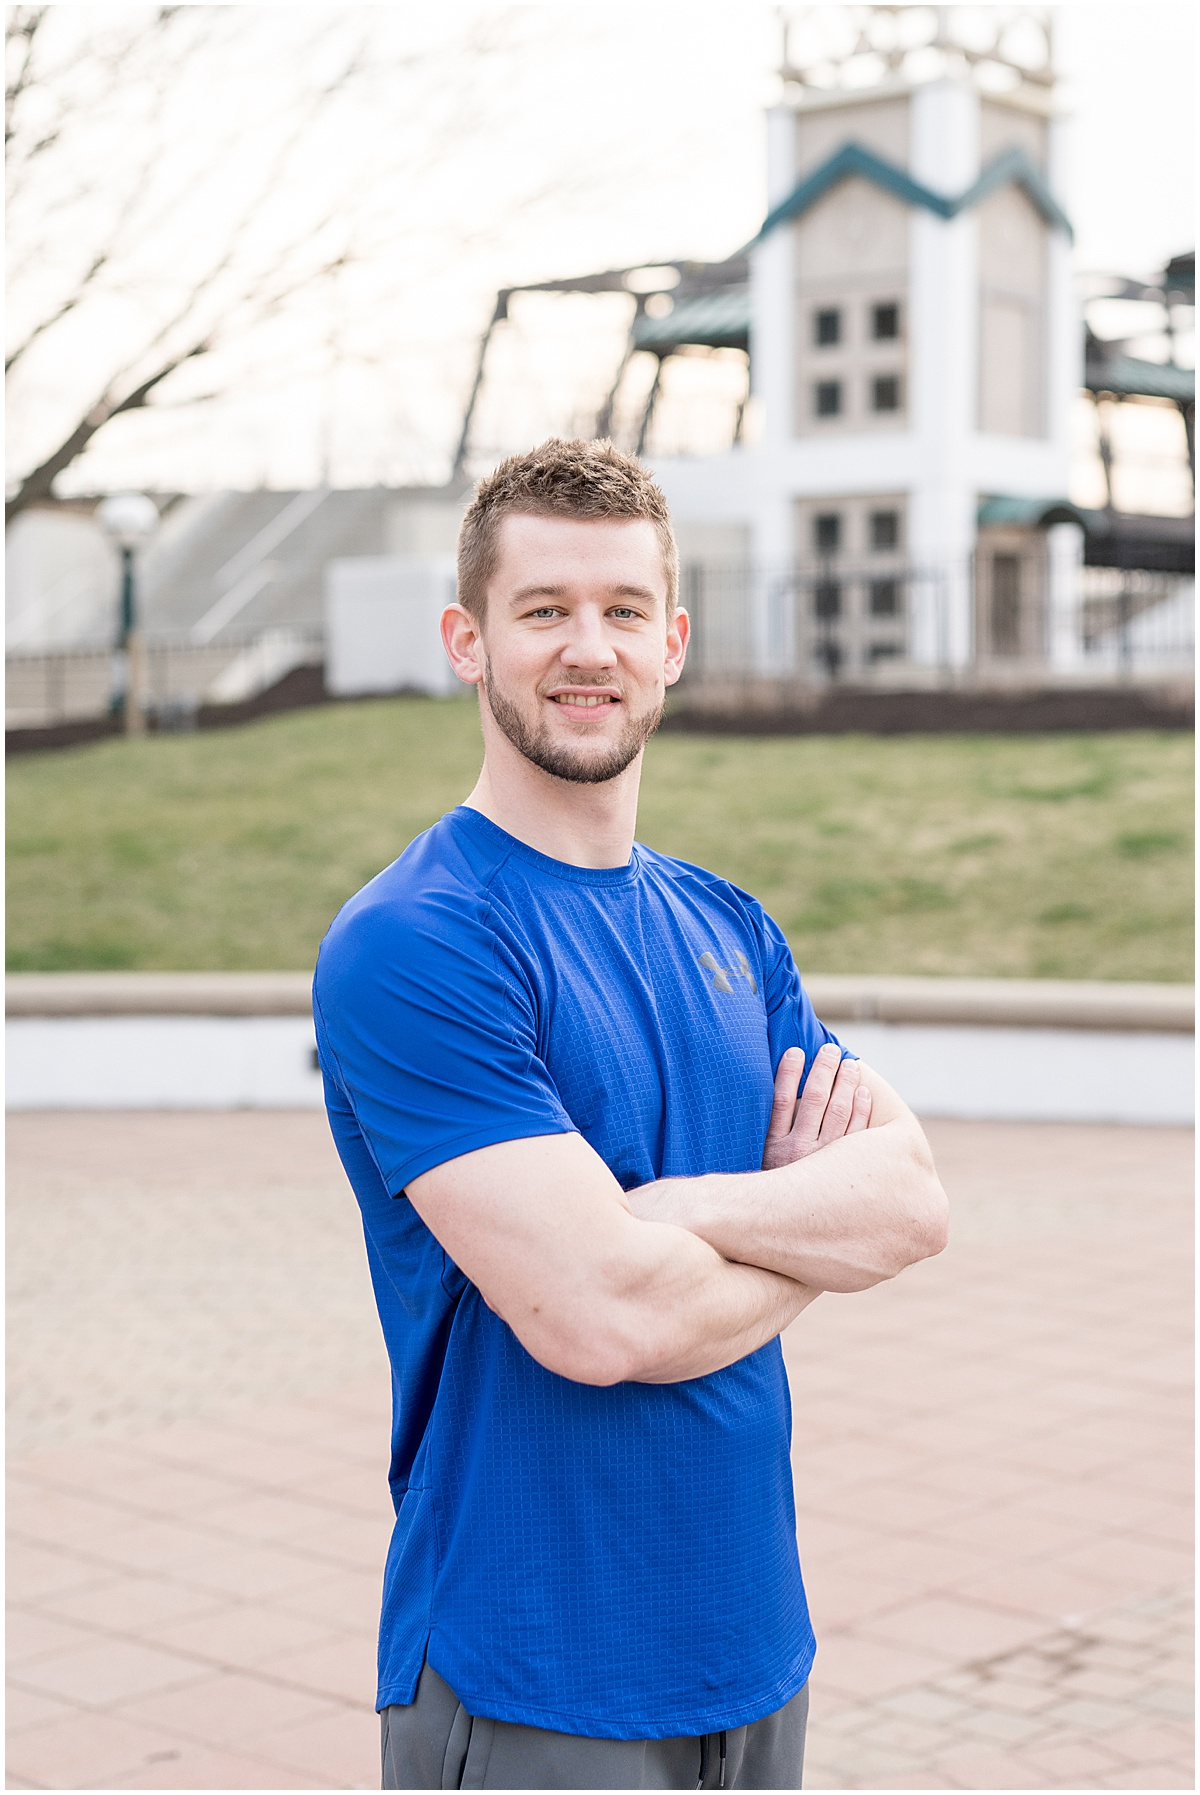 Personal Trainer Frank Brenda's personal trainer branding photos in downtown Lafayette, Indiana